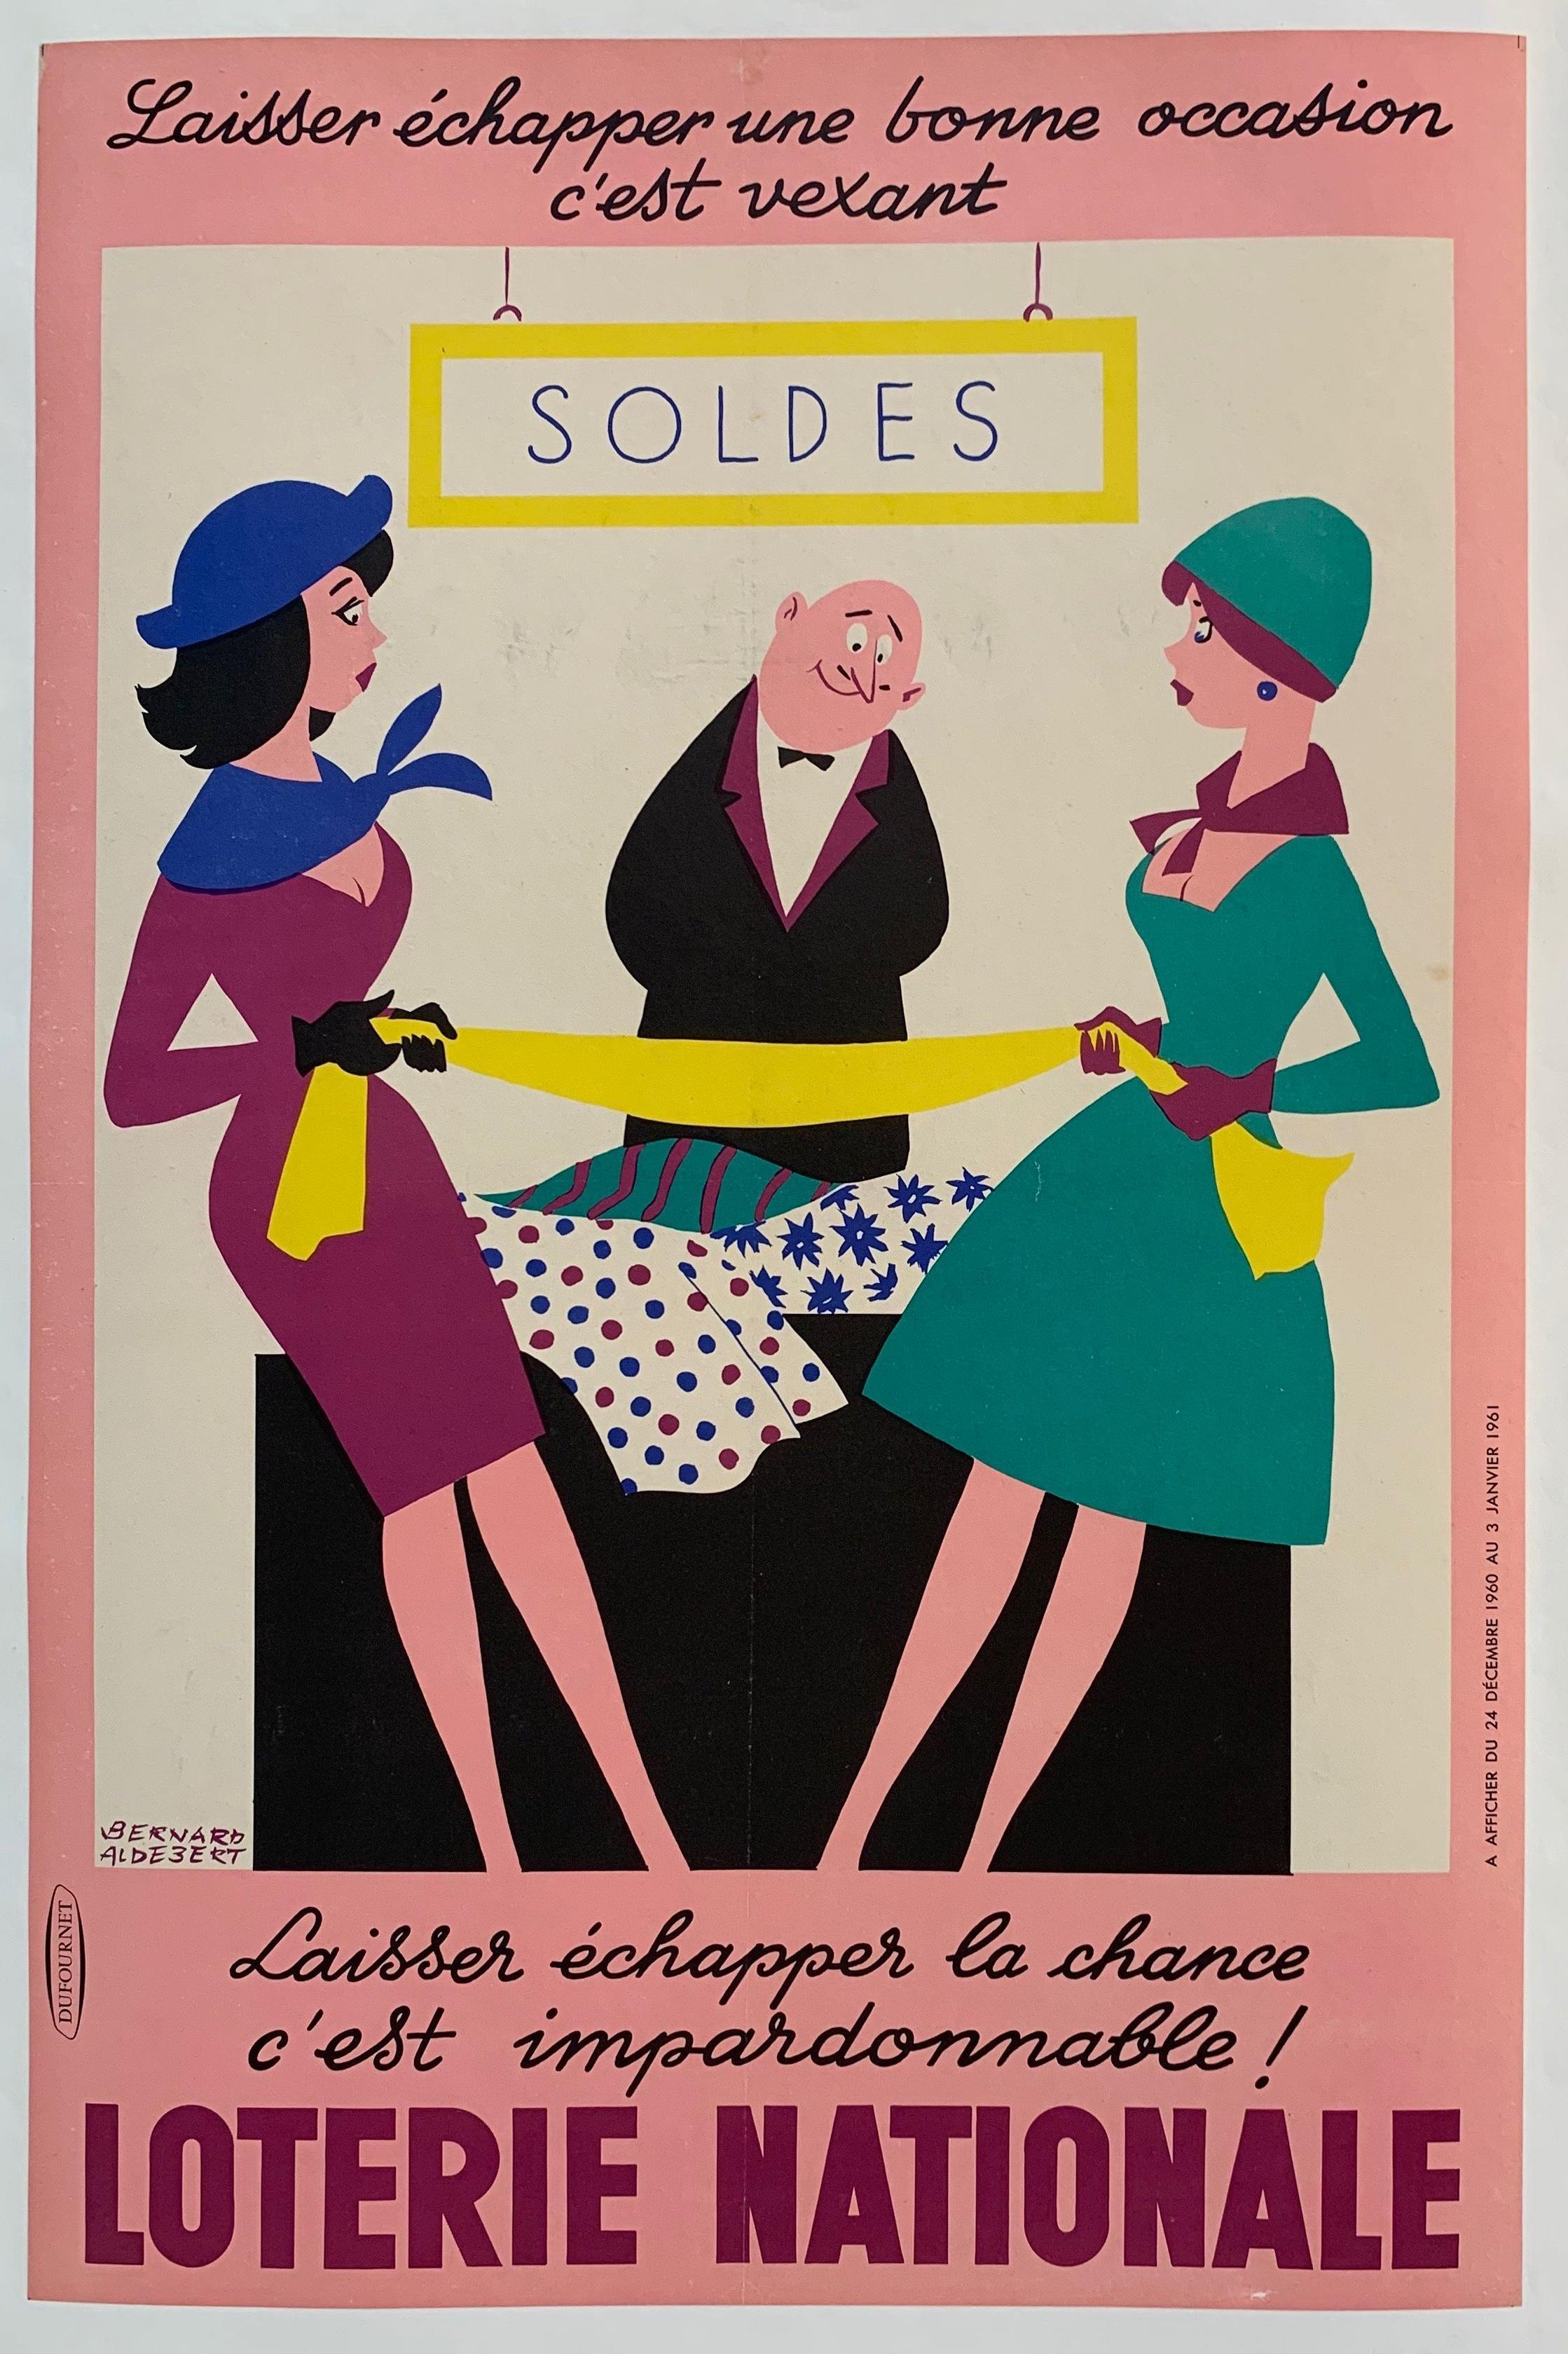 loterie nationale SOLDES - Poster Museum